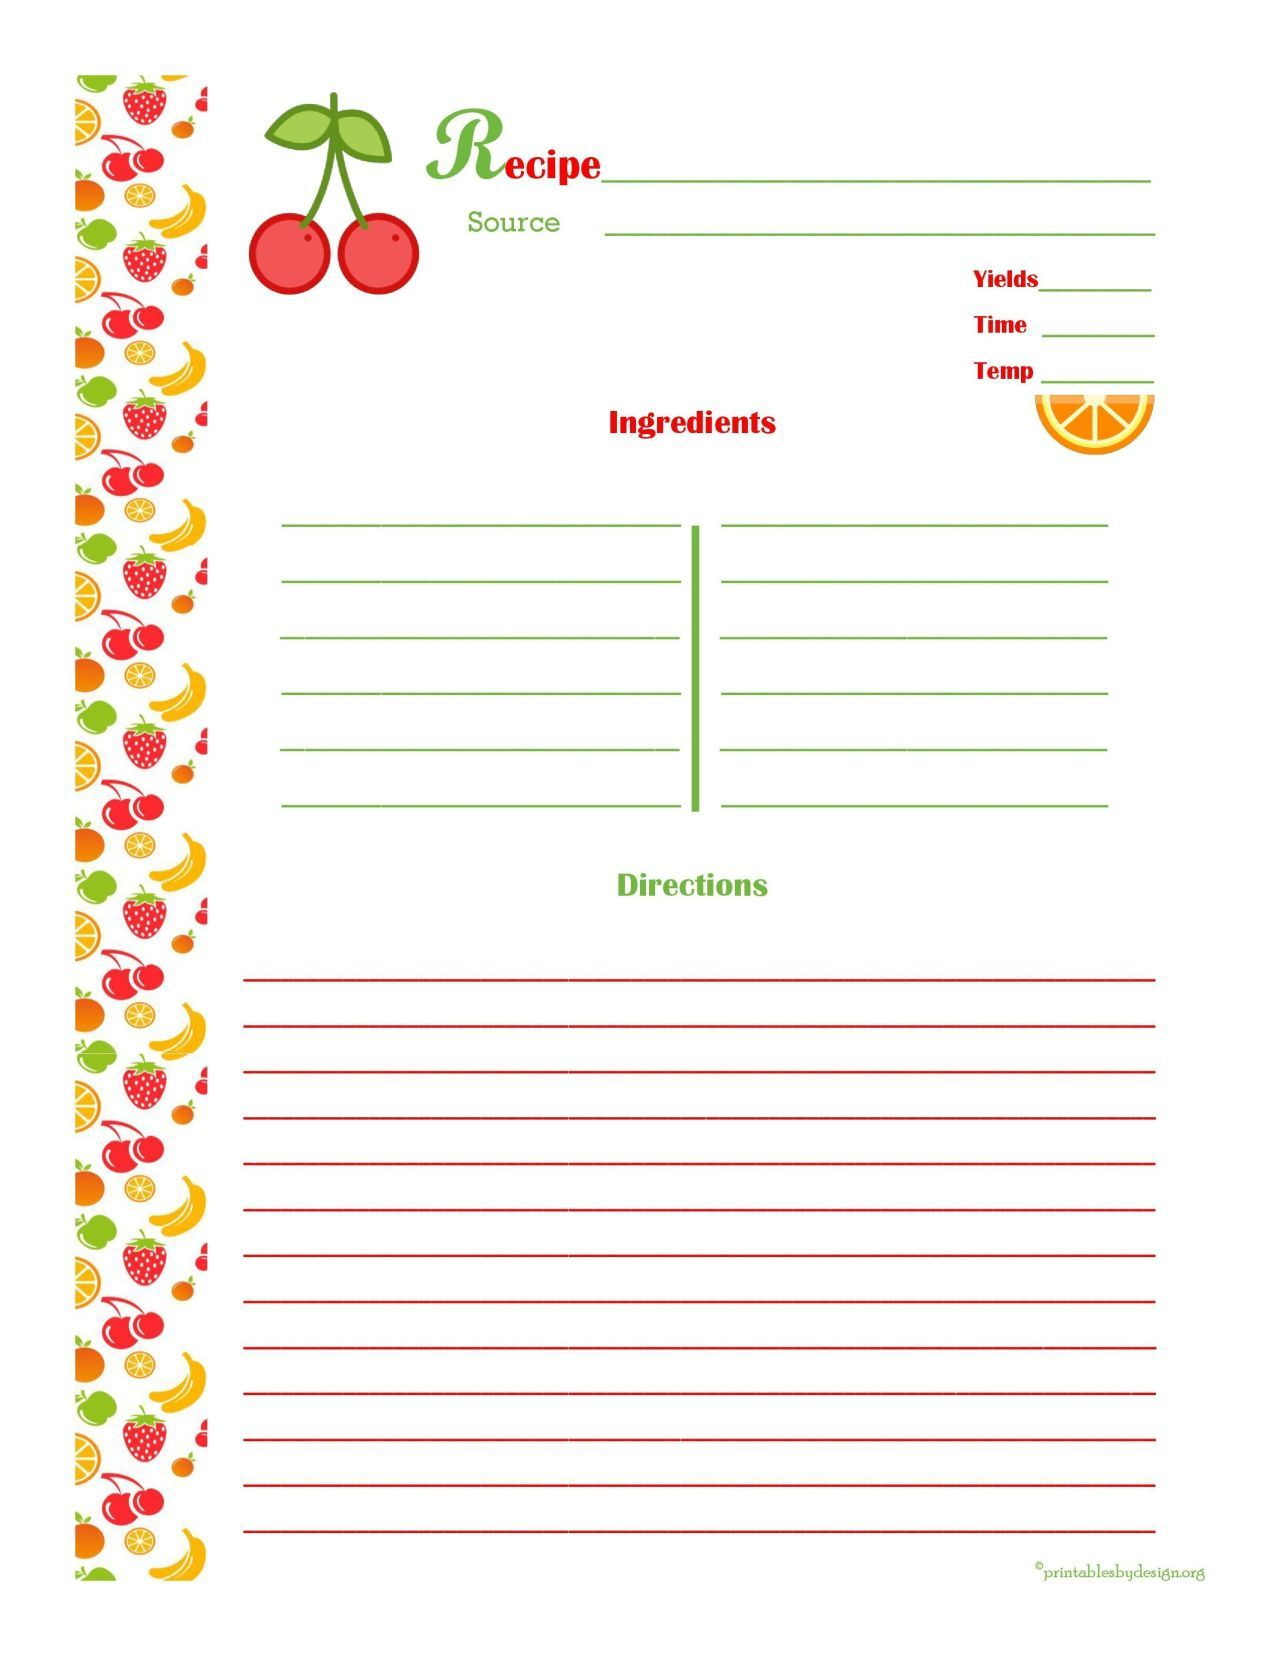 Free Editable Recipe Card Templates For Microsoft Word Free Download Recipe Cards Printable Free Recipe Cards Template Recipe Book Templates